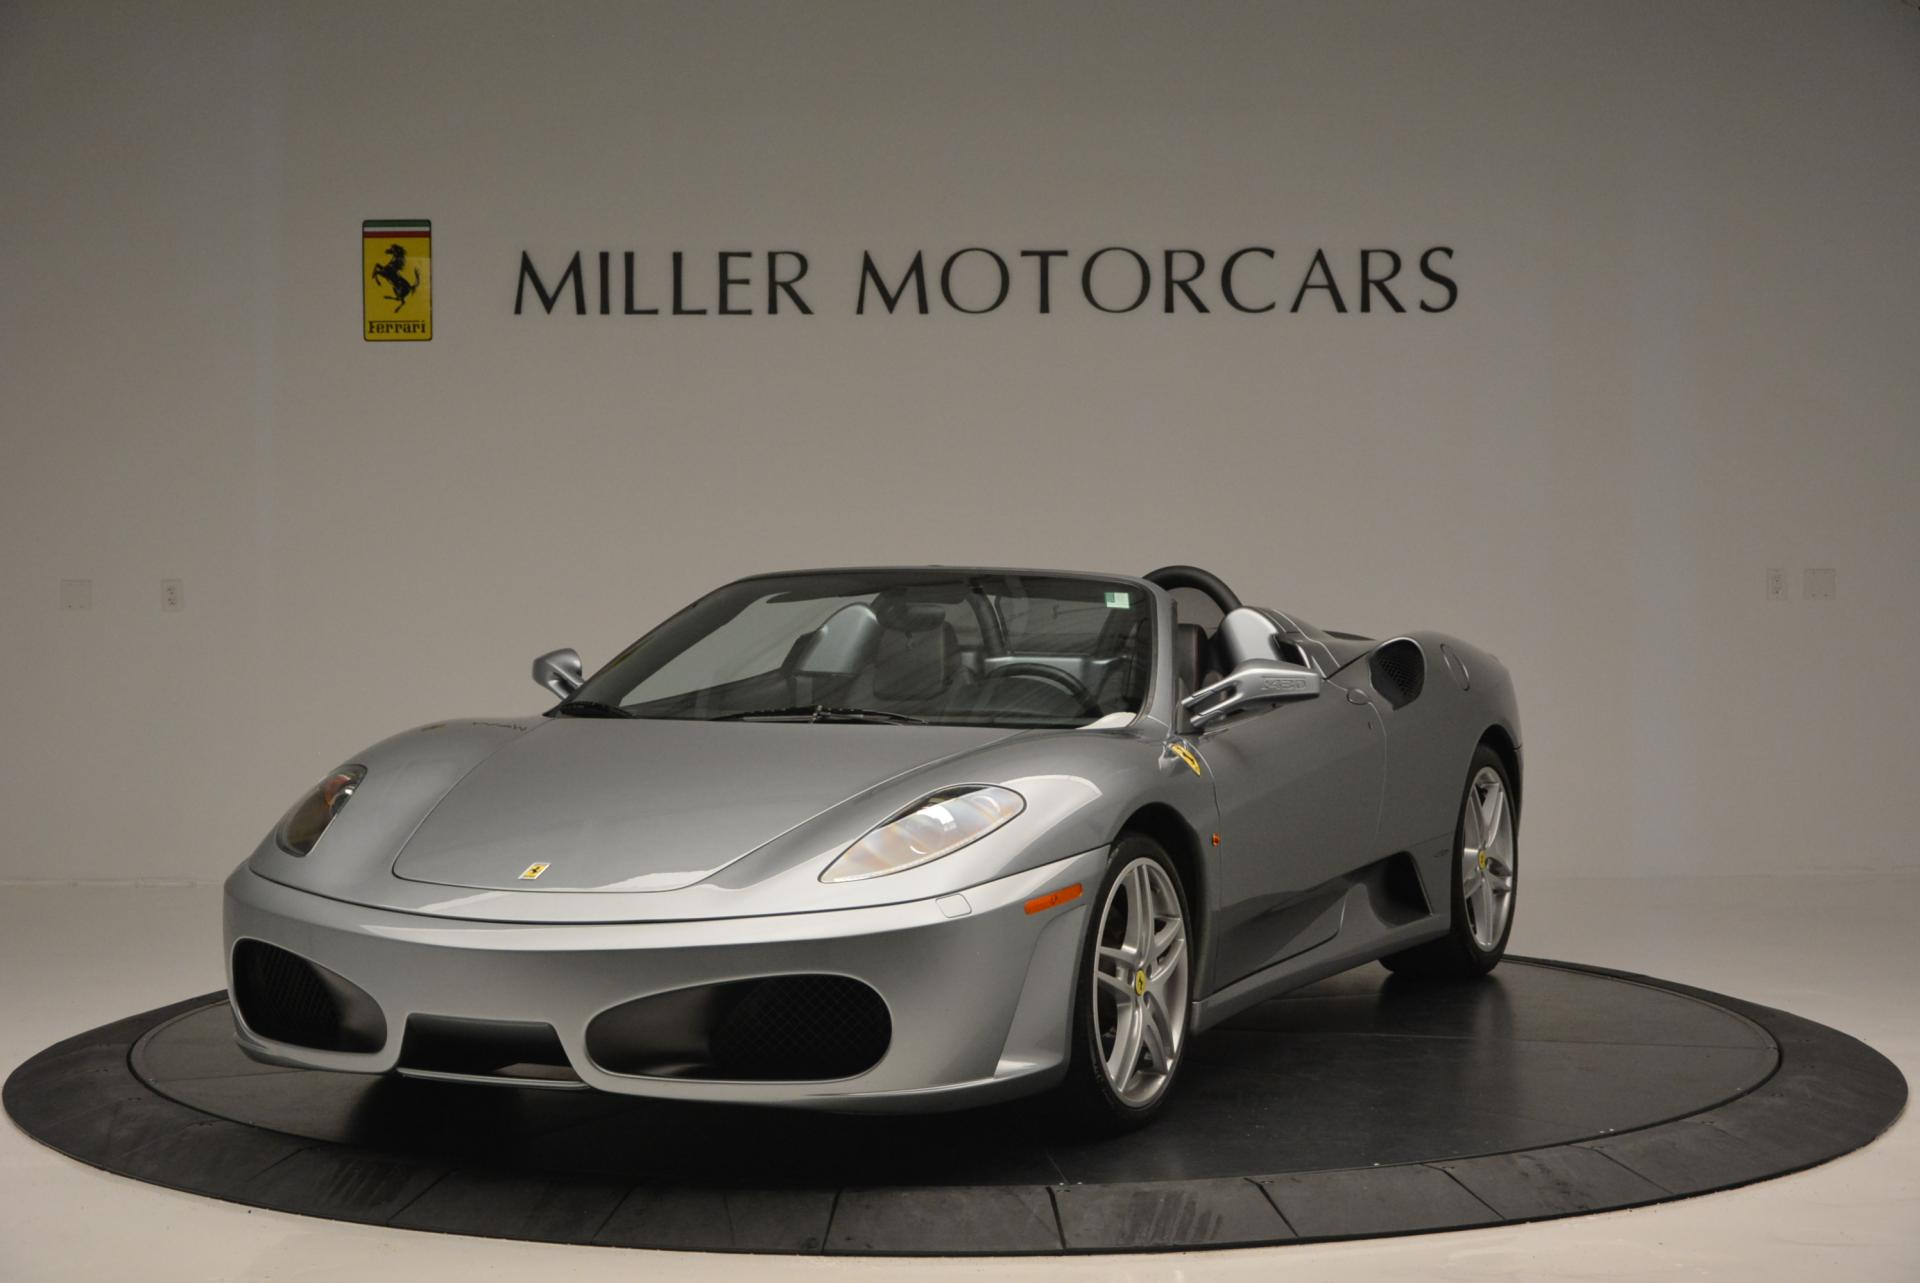 Used 2005 Ferrari F430 Spider for sale Sold at Alfa Romeo of Westport in Westport CT 06880 1